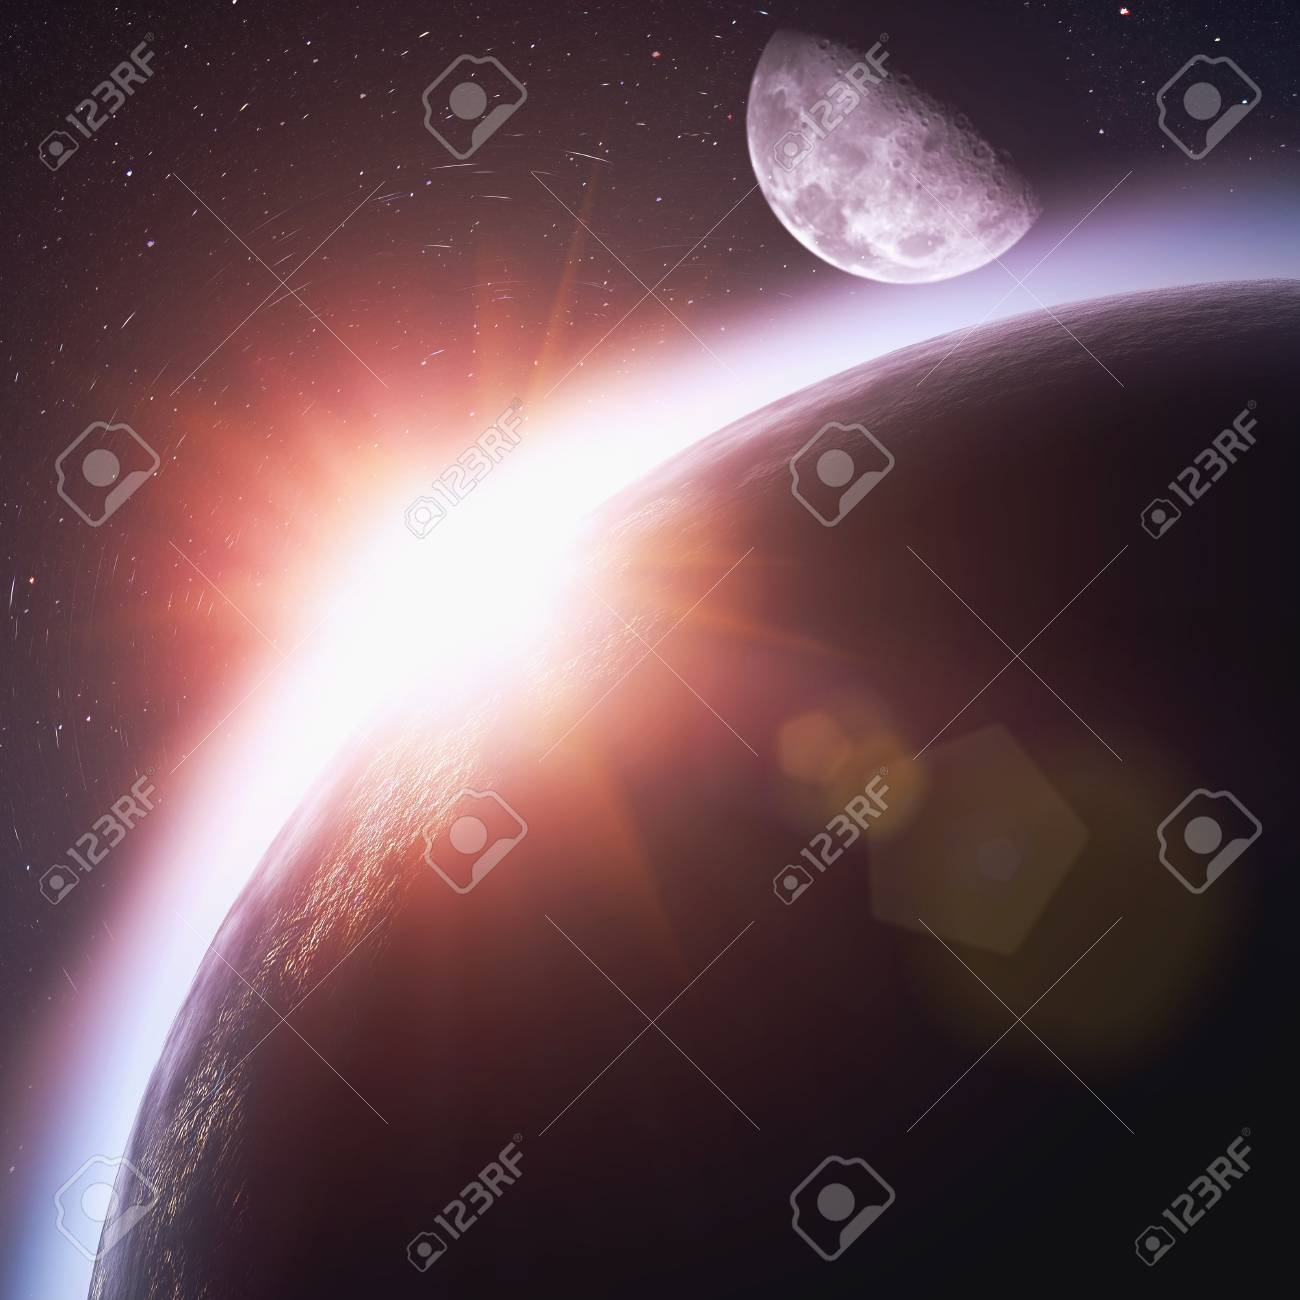 Rising sun over the planet Earth, abstract backgrounds. No NASA imagery used Stock Photo - 21375904